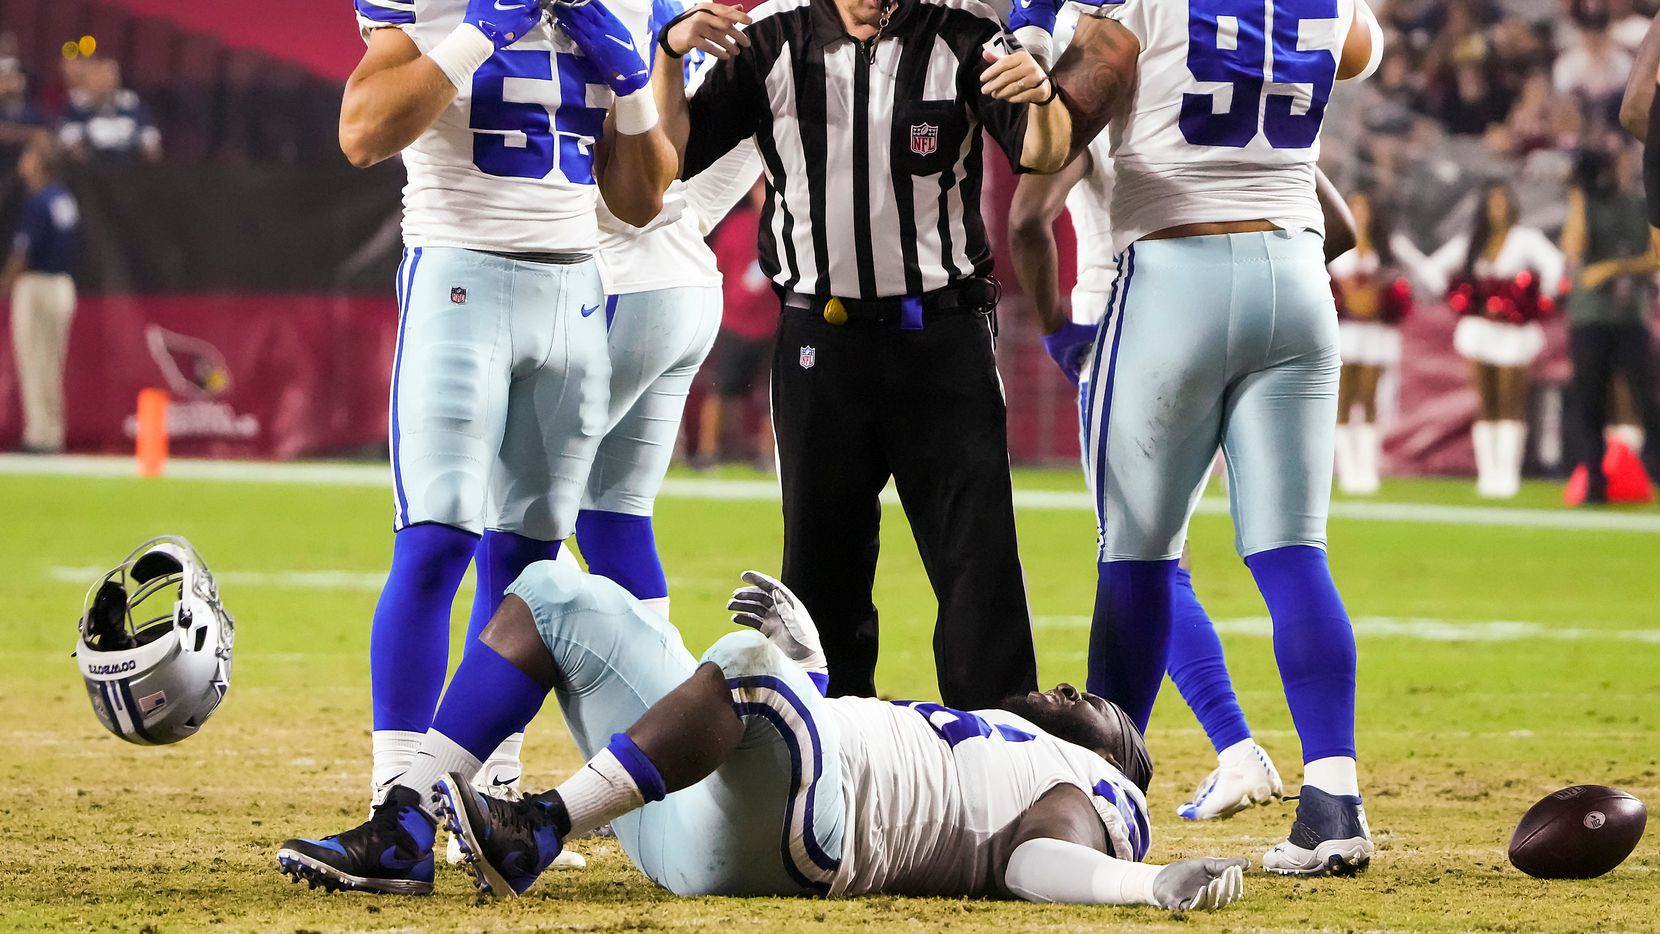 Dallas Cowboys defensive tackle Neville Gallimore (96) tosses away his helmet after being injured during the first quarter of an NFL football game against the Arizona Cardinals as linebacker Leighton Vander Esch (55) looks on at State Farm Stadium on Friday, Aug. 13, 2021, in Glendale, Ariz. (Smiley N. Pool/The Dallas Morning News)